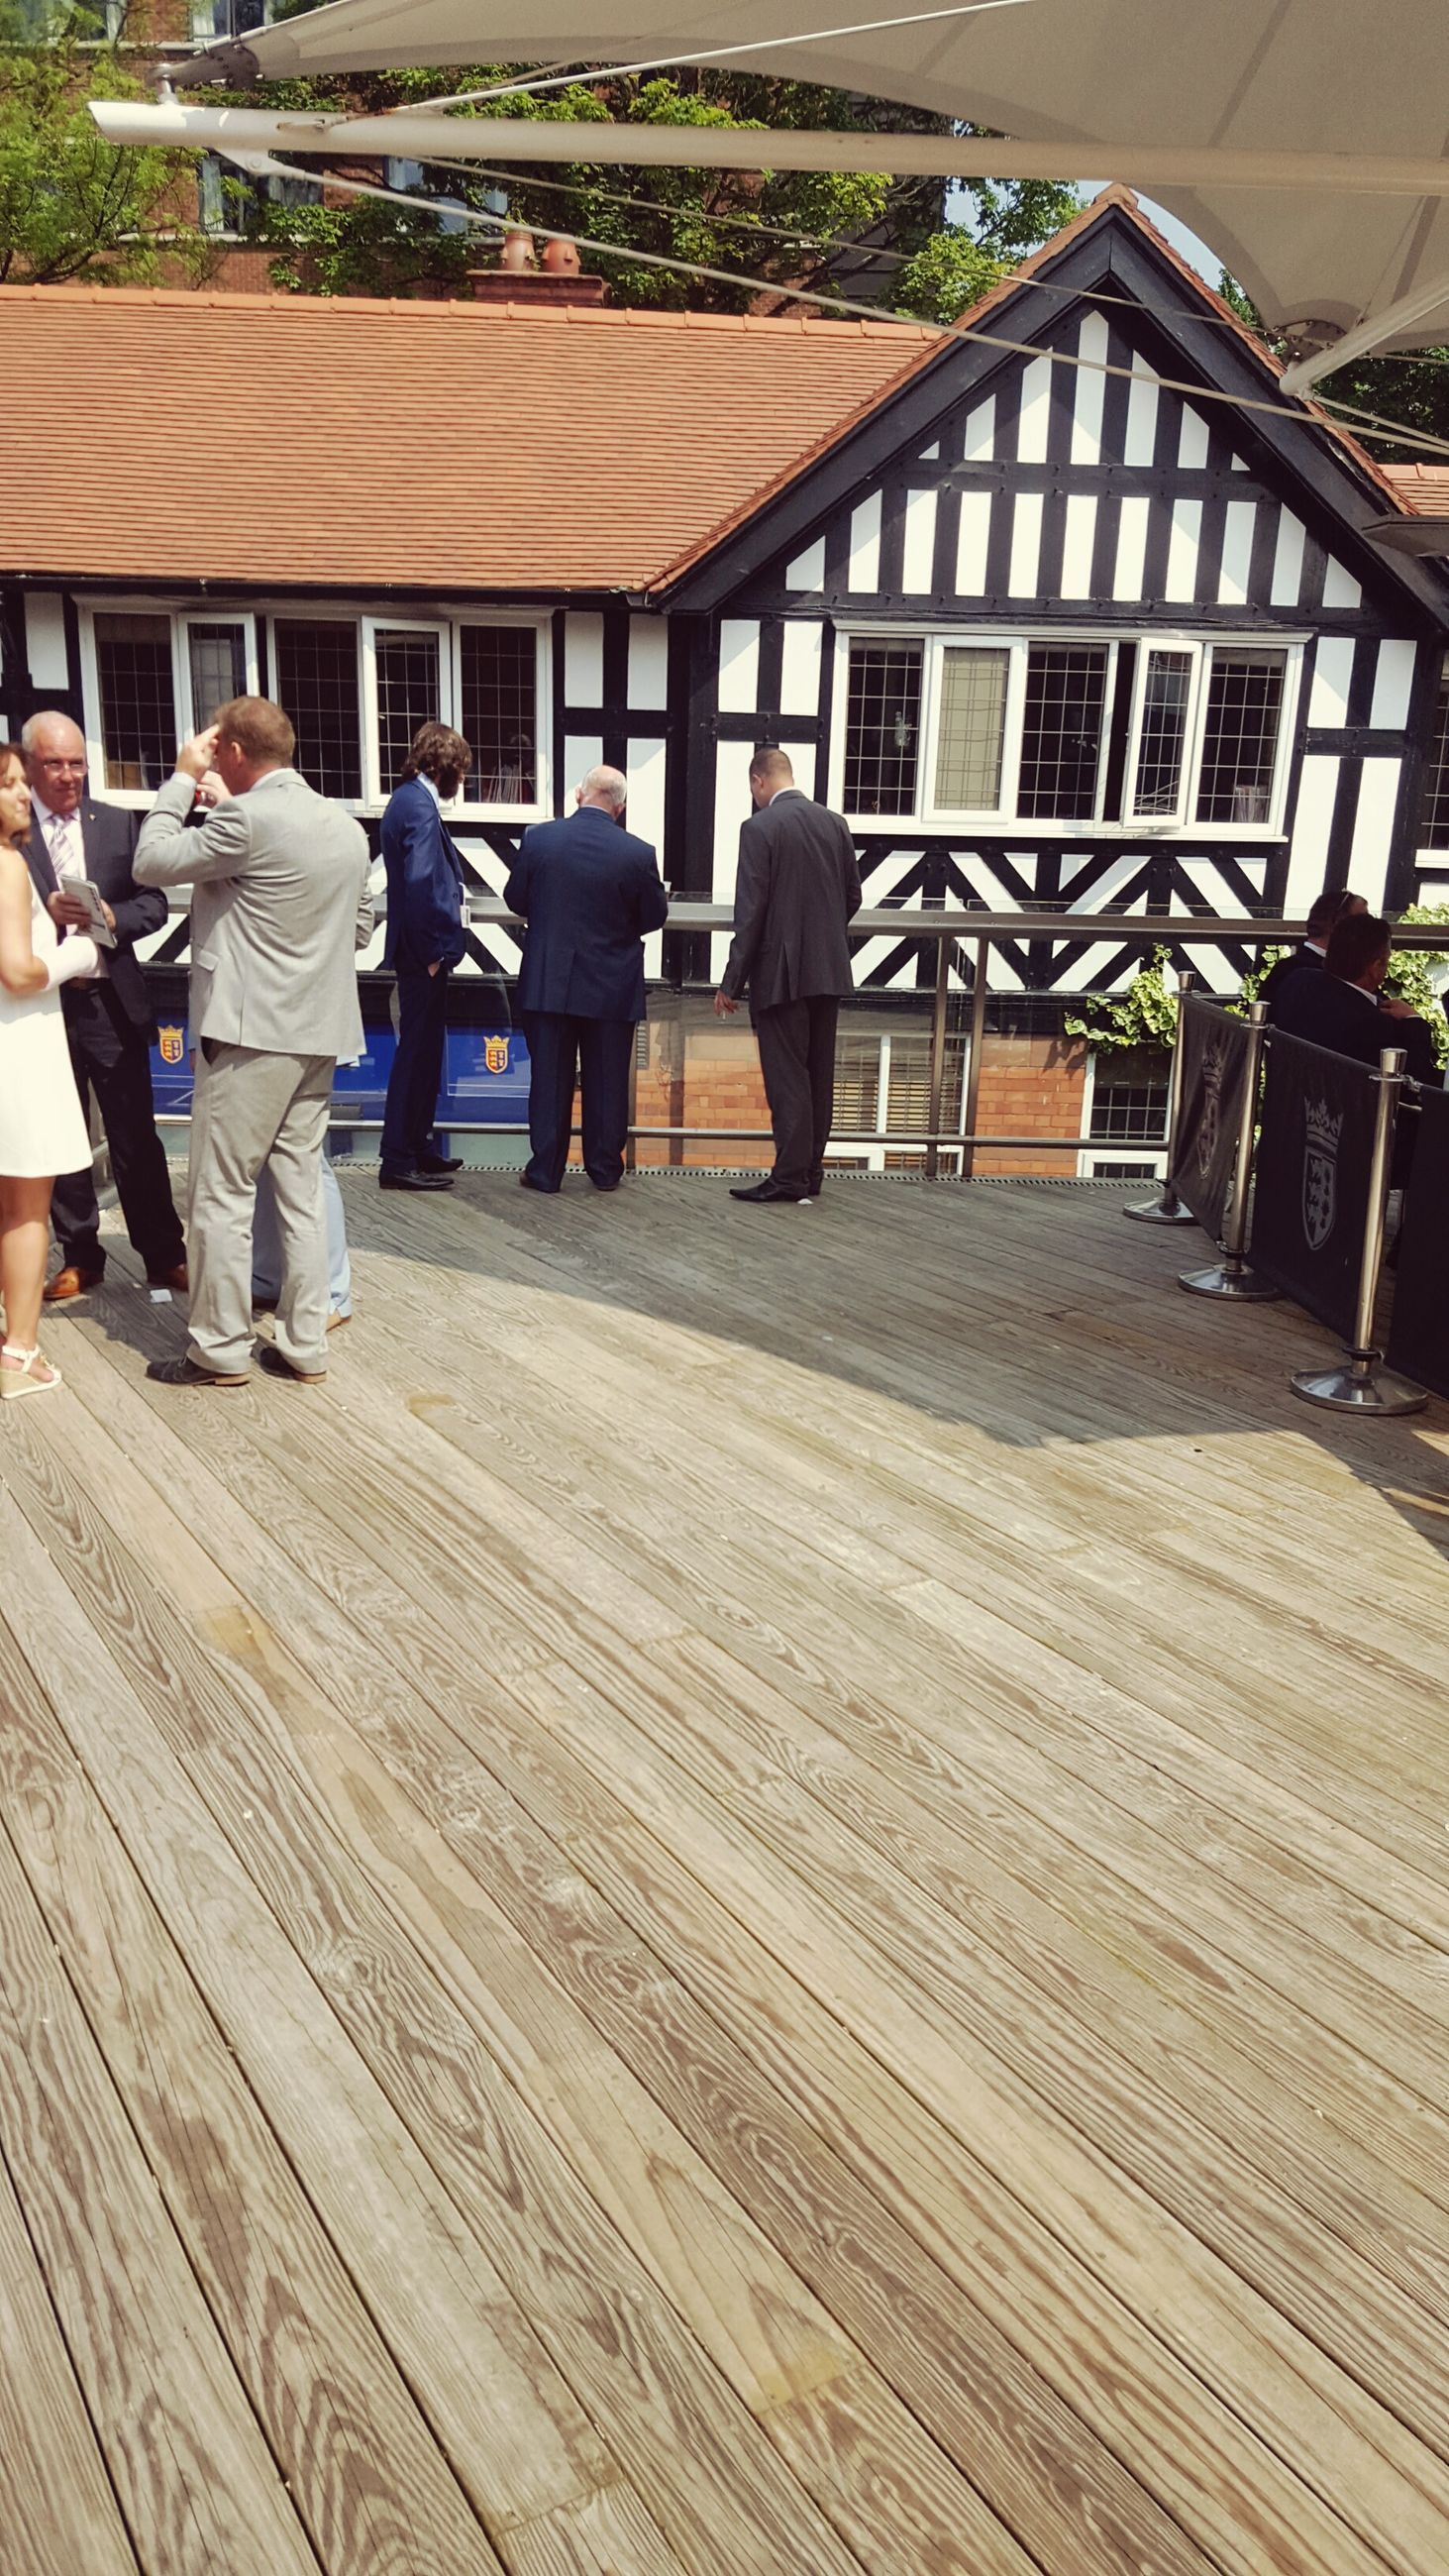 building exterior, built structure, architecture, men, house, lifestyles, roof, leisure activity, person, day, residential structure, outdoors, rear view, walking, full length, sitting, wood - material